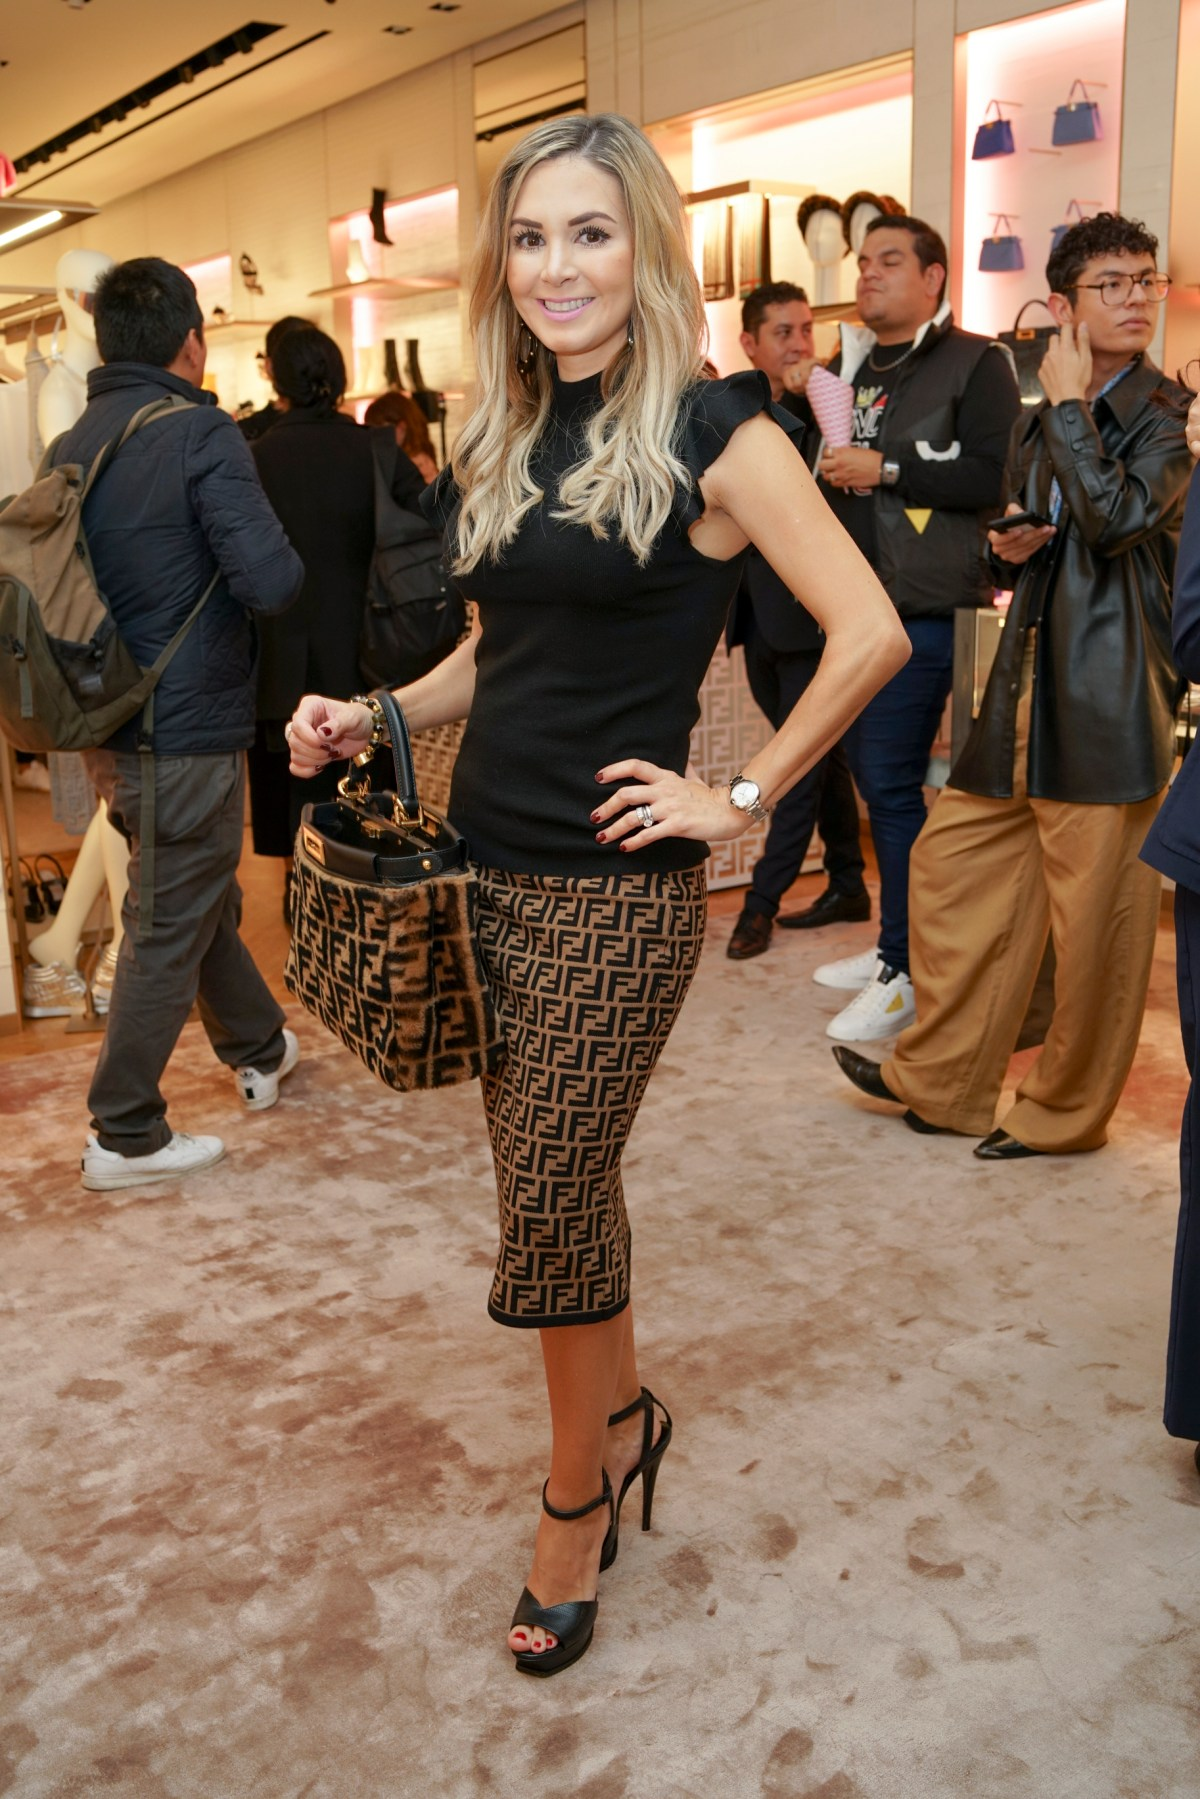 FENDI PRINTS ON EVENT Oct 22nd_FlorenciaSarcho_146